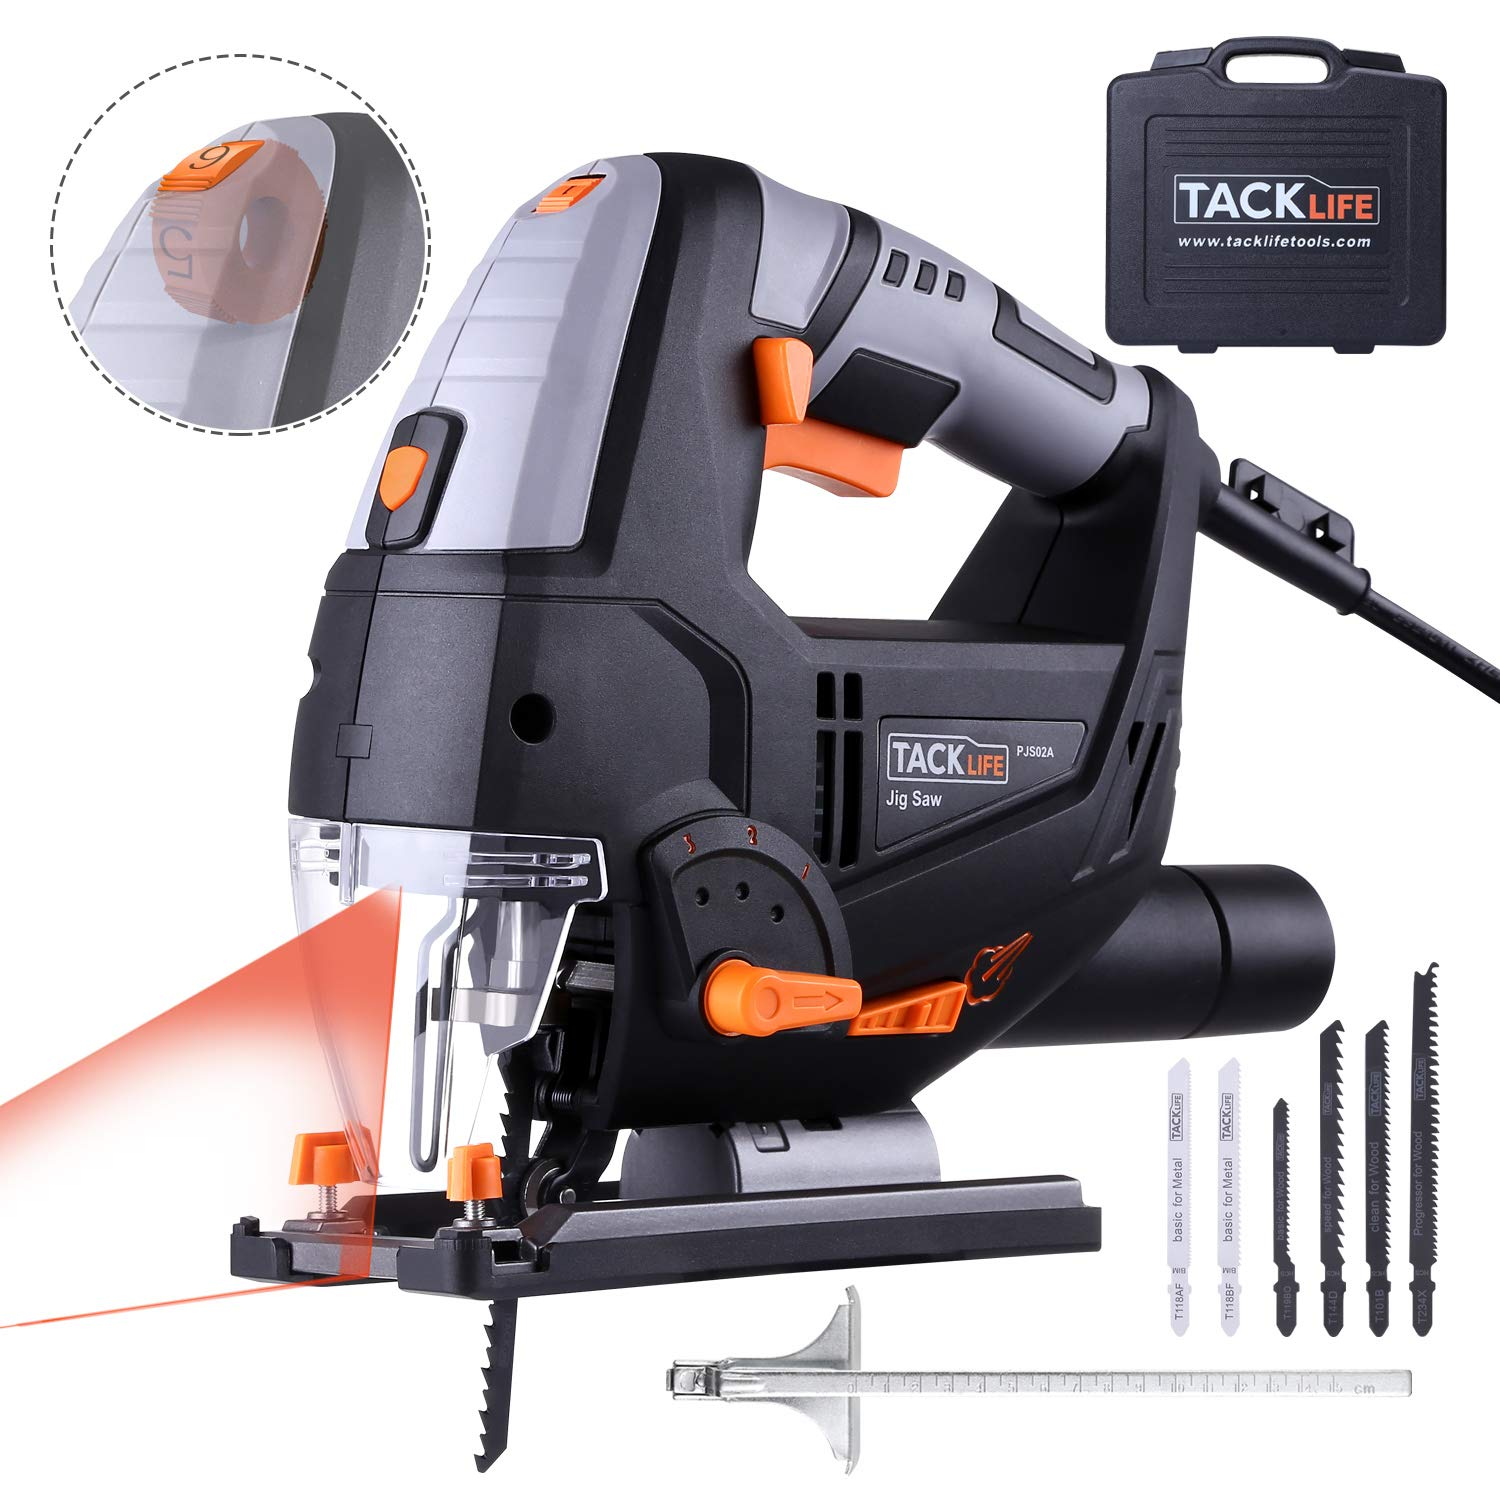 TACKLIFE Advanced 6.7 Amp 3000 SPM Jigsaw with Laser & LED, 6 Blades, 10feet (3M) Cord Length, Pure Copper Motor, Max Bevel Cutting Angle